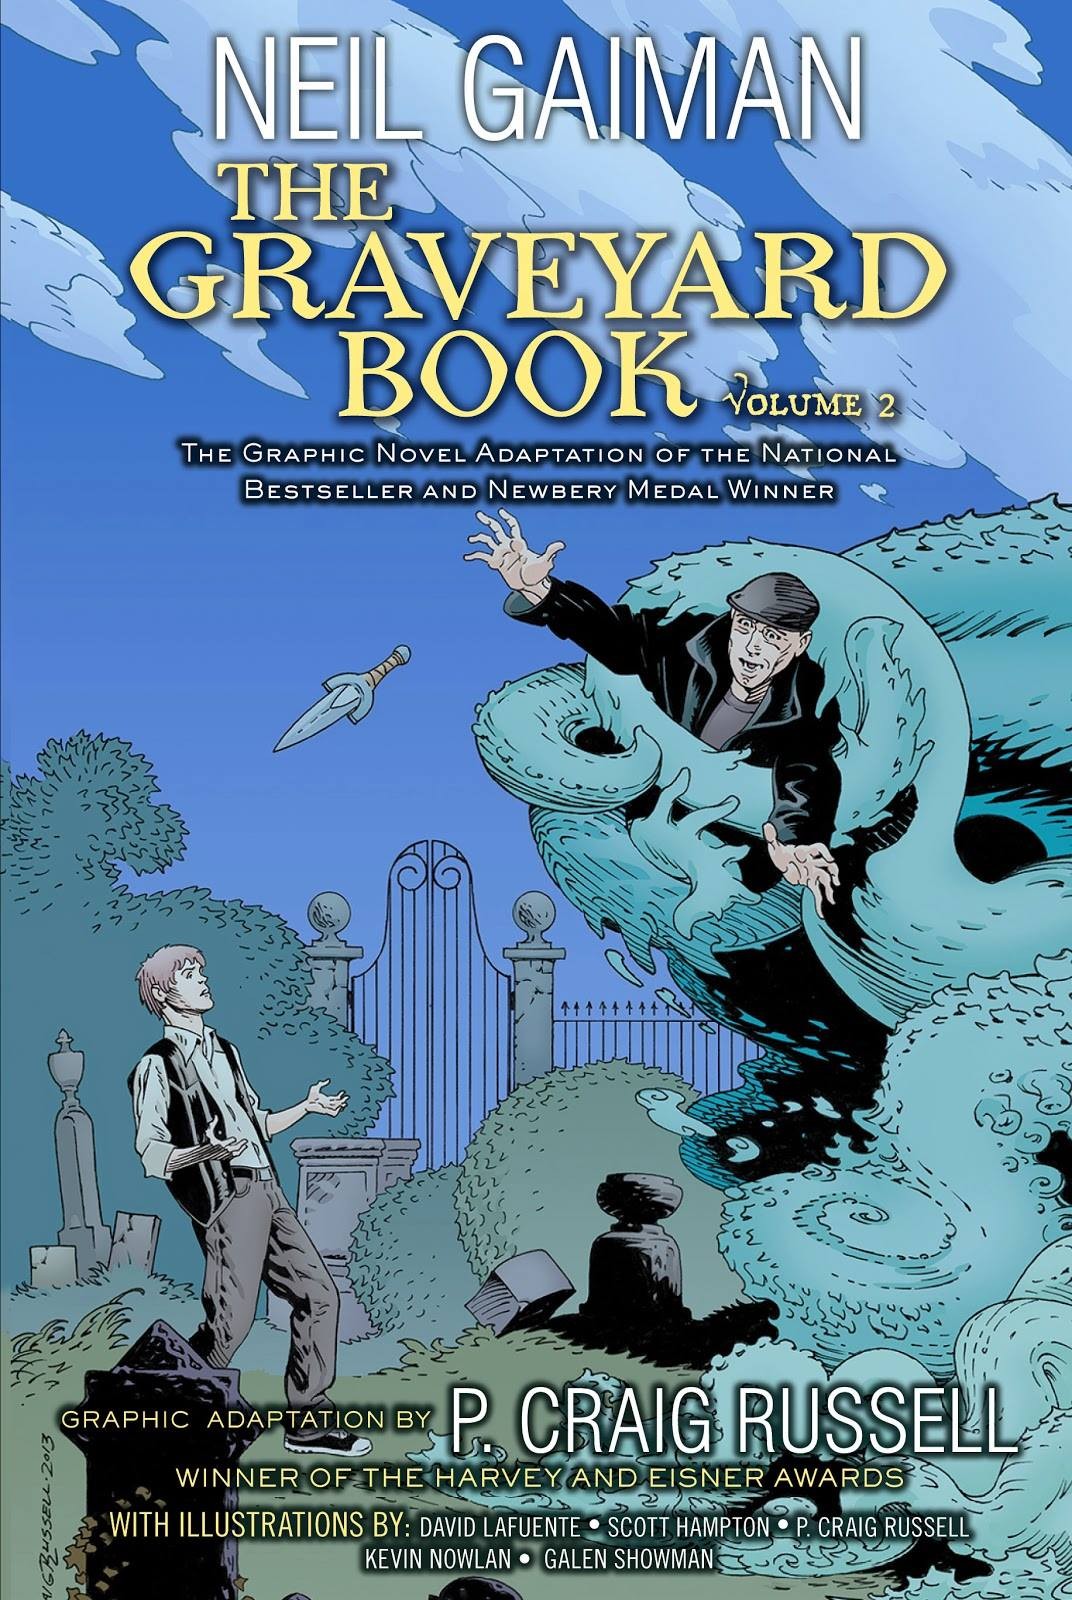 The Graveyard Book Graphic Novel: Volume 2 by Neil Gaiman & P. Craig Russell